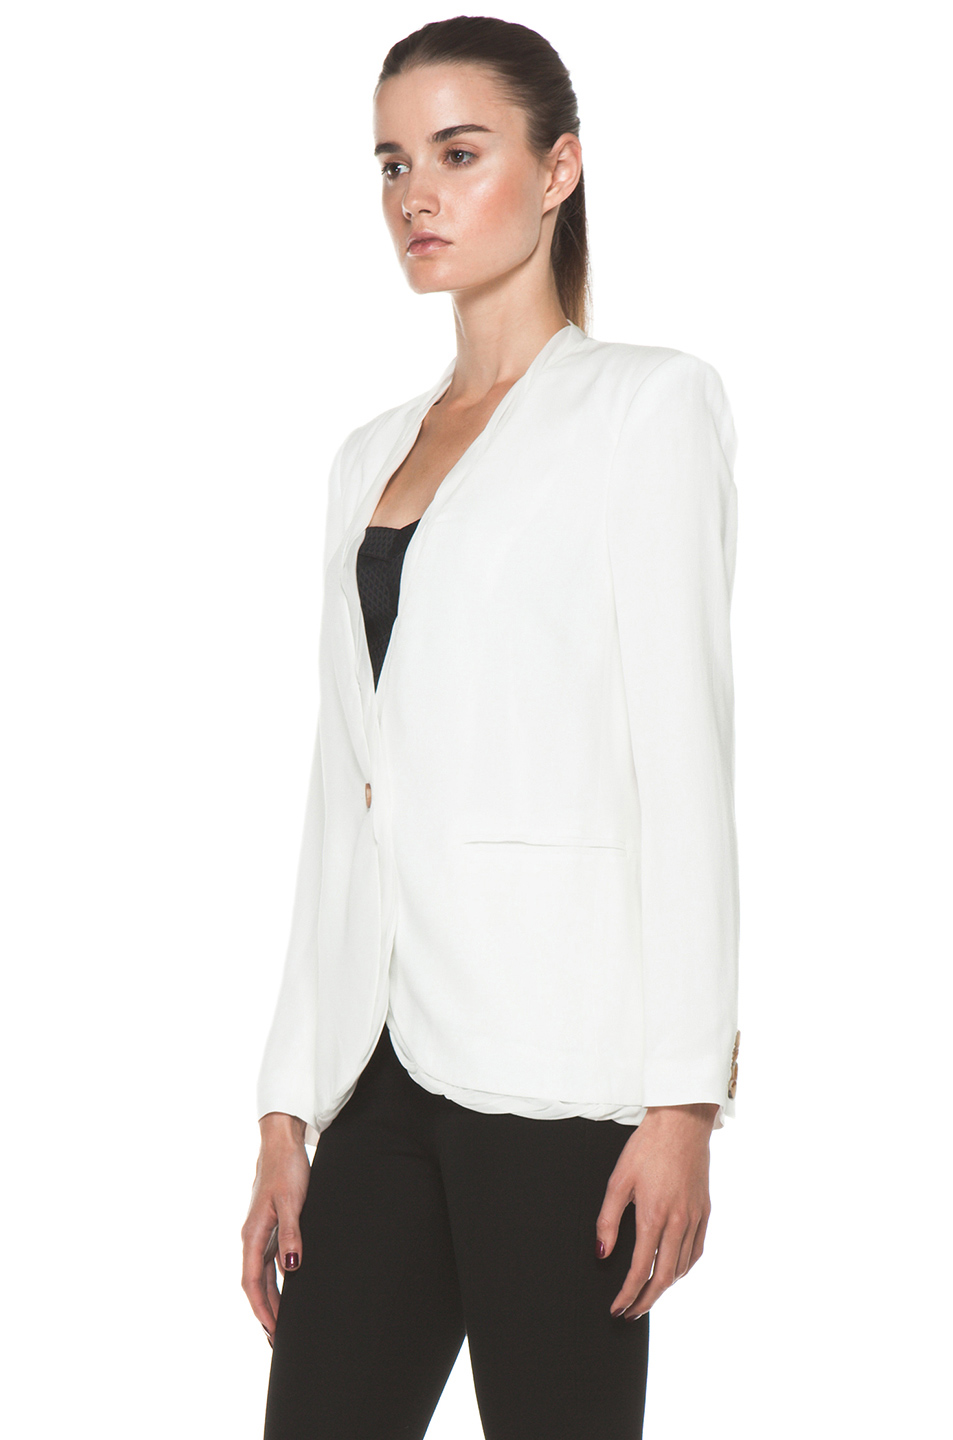 Helmut Lang|Relic Twist Viscose Blazer in Soft White